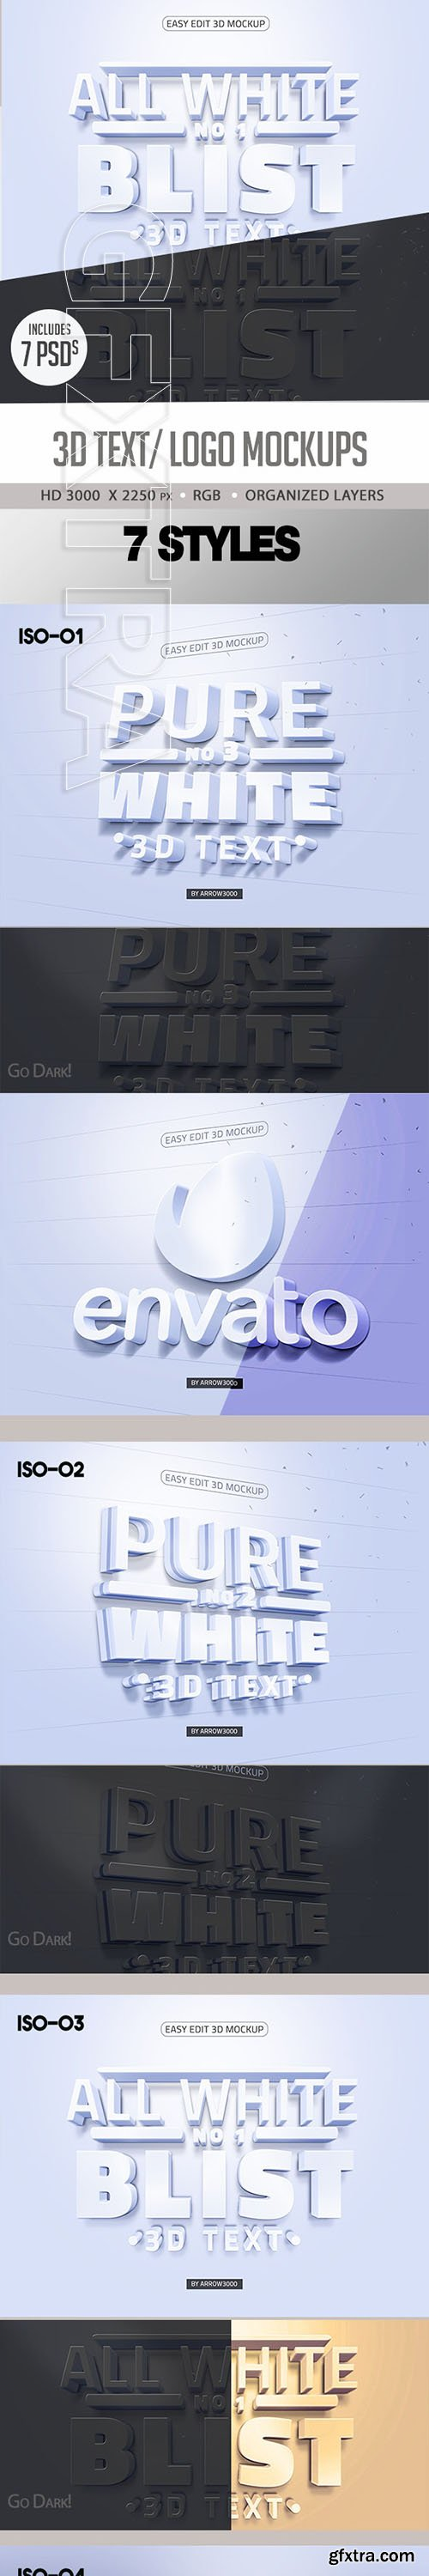 GraphicRiver - Pure White 3D Text Logo Mock up 23888803